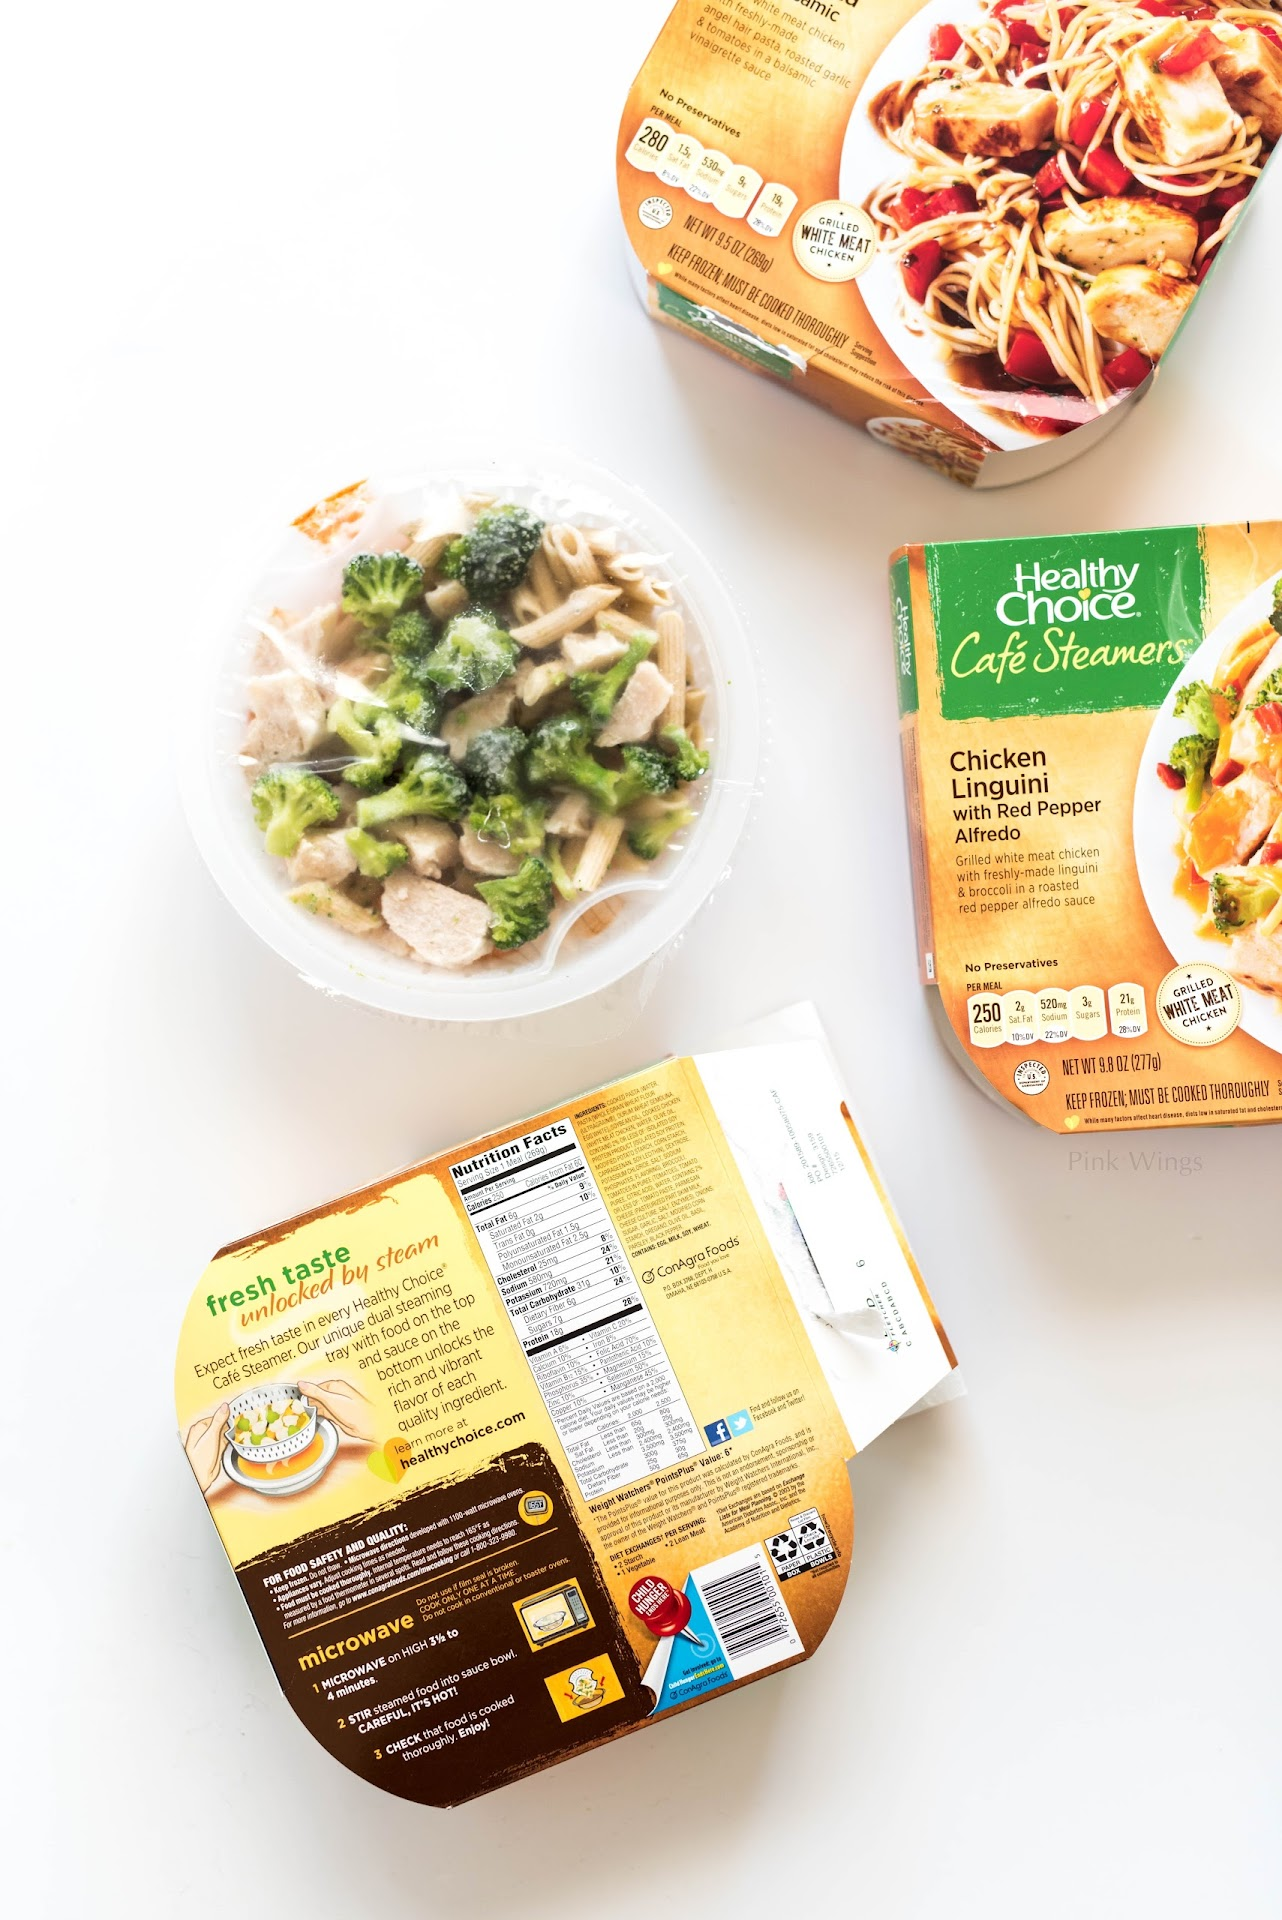 best tasting frozen meals, family meals, best frozen grocery store meals, quick easy meal planning, meal ideas, ideas for two, busy moms, quick easy meals for 4, healthy choice cafe steamers review, penne marinara, best frozen meals,